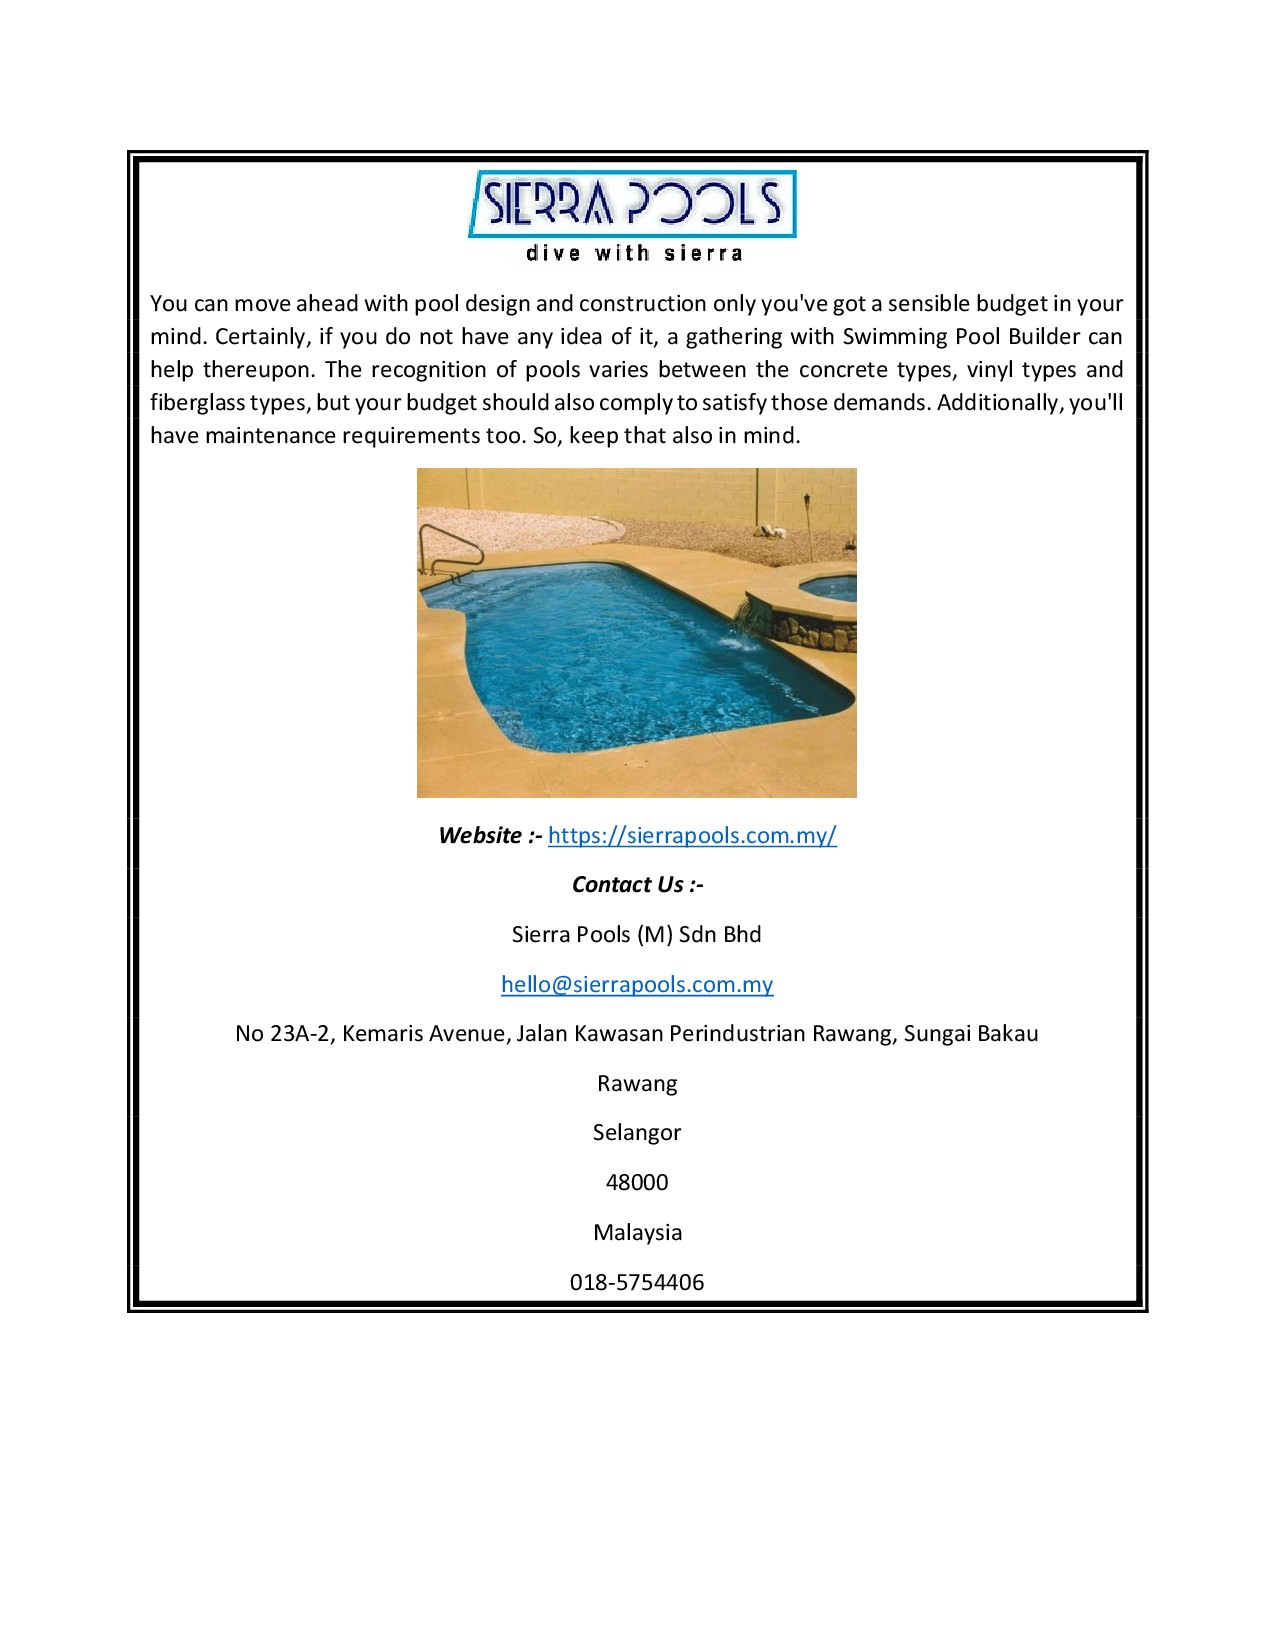 Sierra Pools (M) Sdn Bhd Products Catalogue